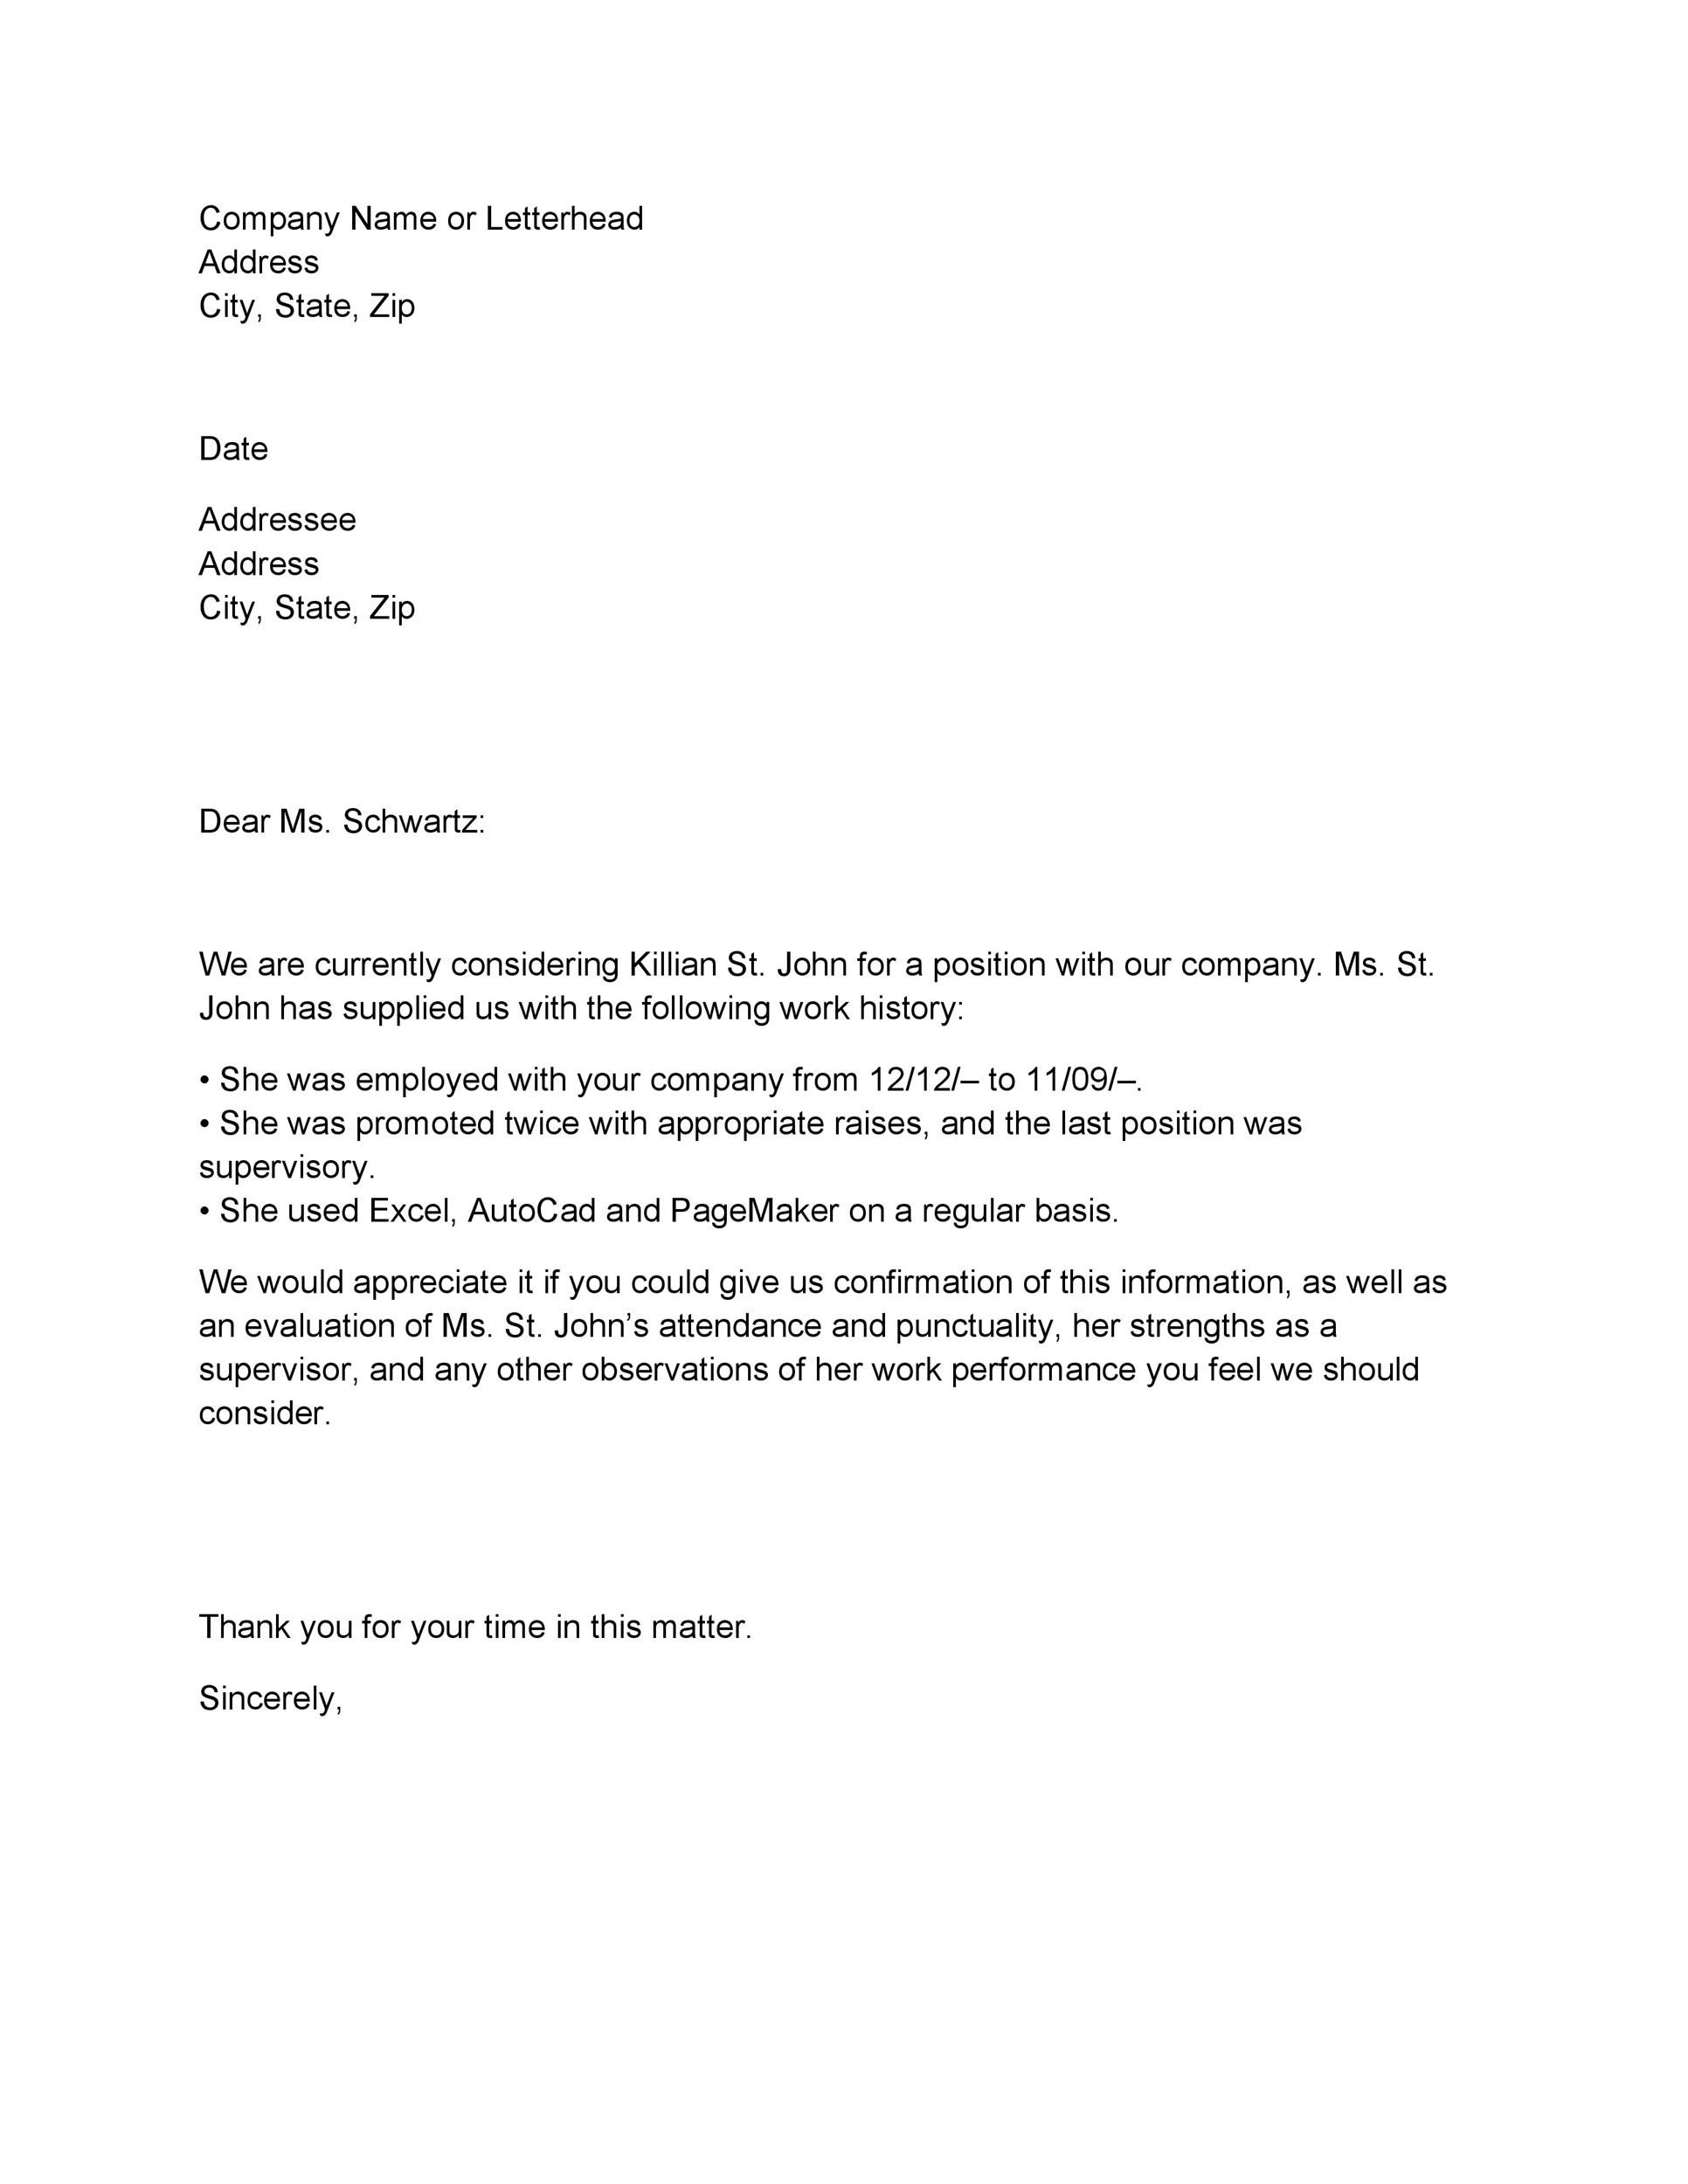 Employer's Letter To Confirm Employment from templatelab.com